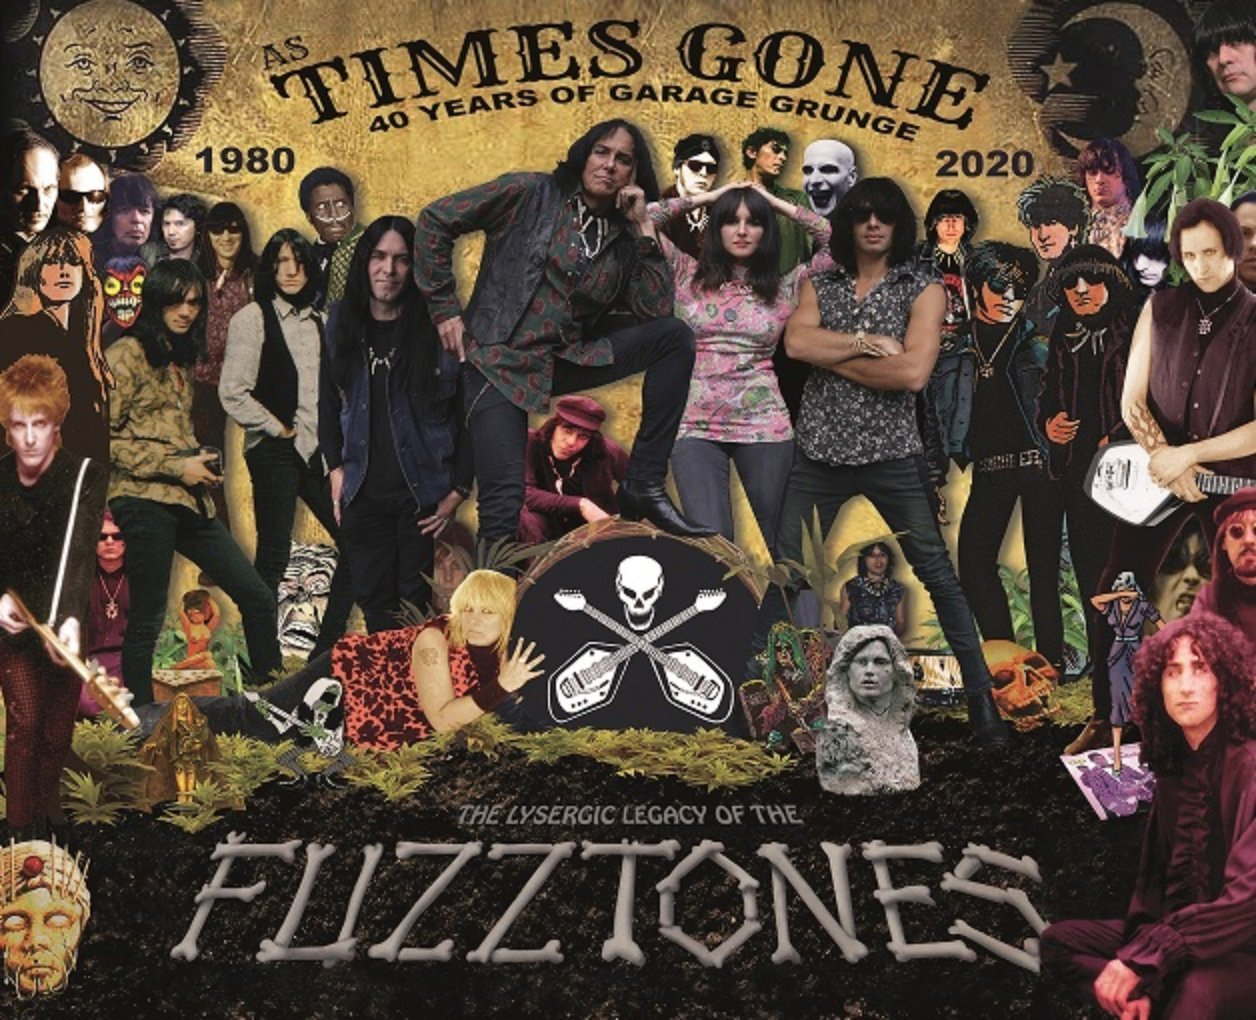 As Times Gone - The Lysergic Legacy of the Fuzztones